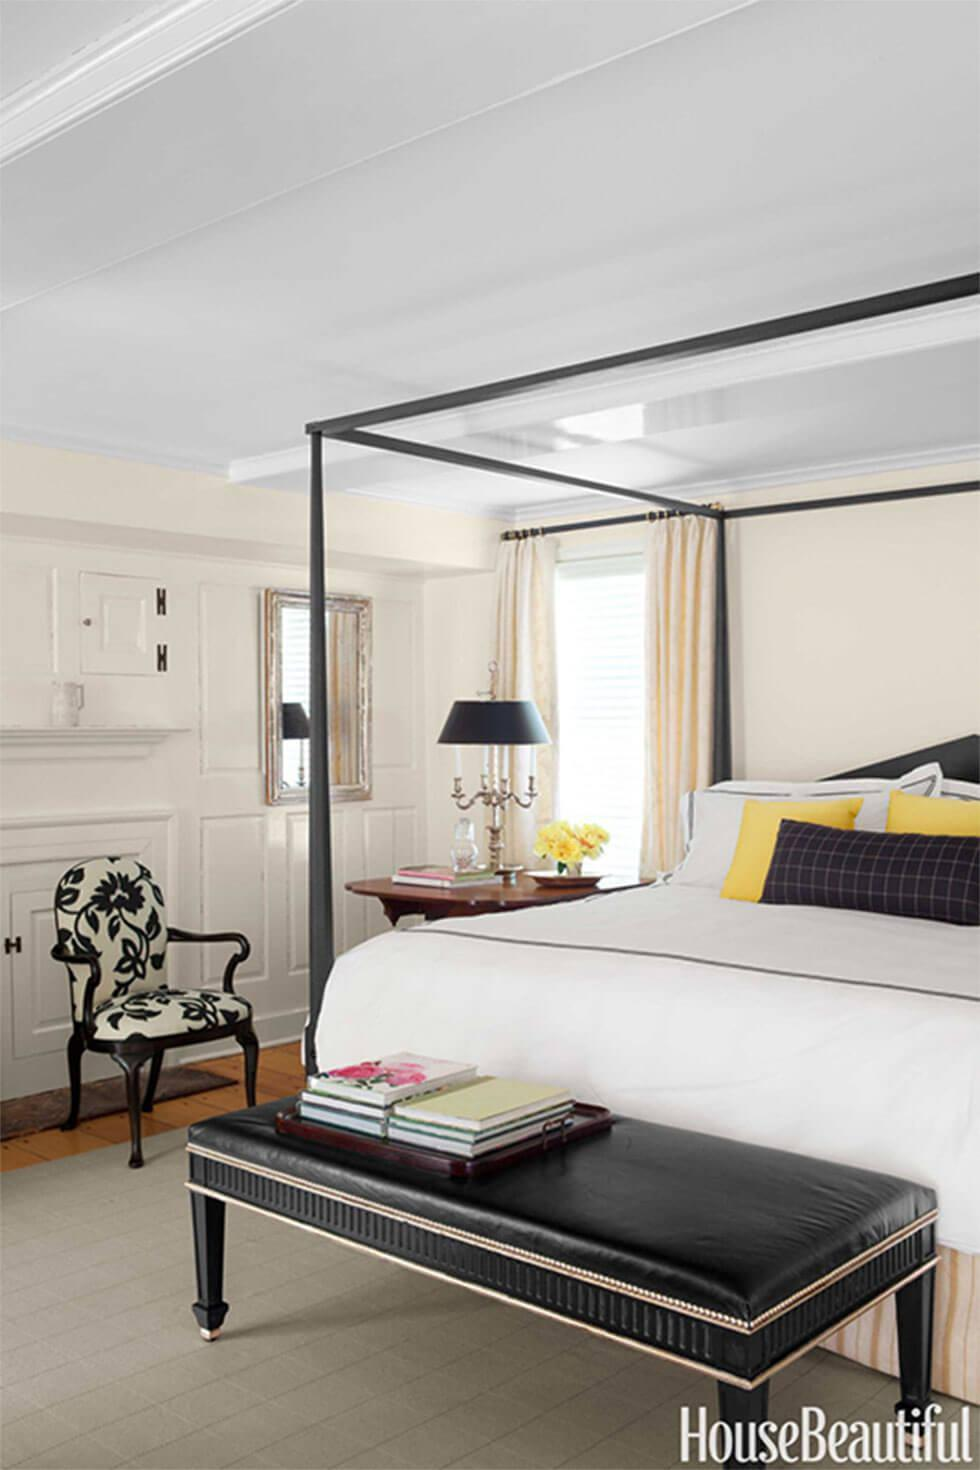 Classic black and white bedroom with floral armchair, four poster bed and bright yellow cushions